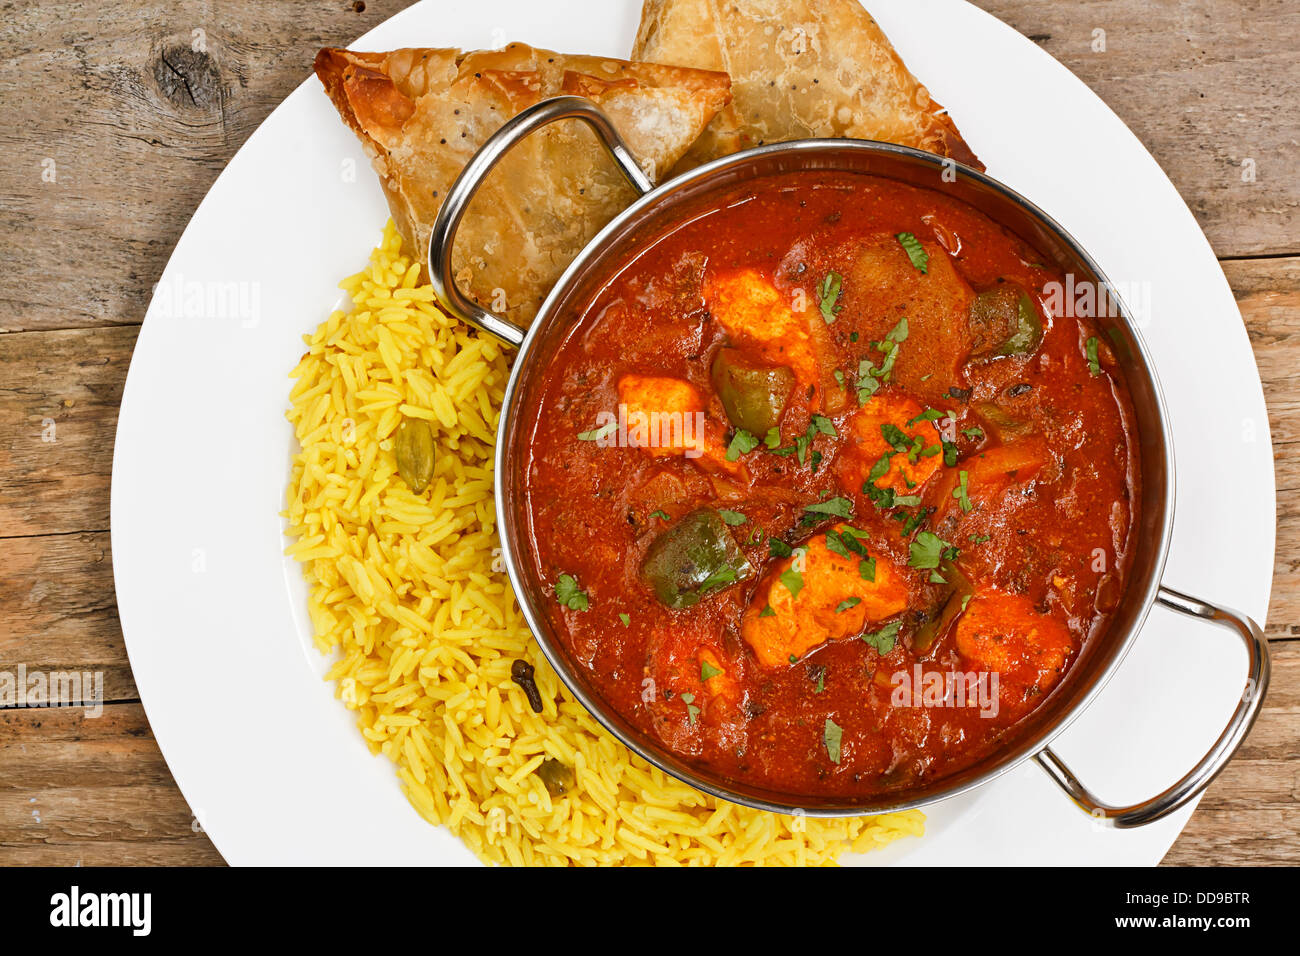 Chicken jalfrezi a popular eastern curry sauce dish from india stock chicken jalfrezi a popular eastern curry sauce dish from india forumfinder Choice Image